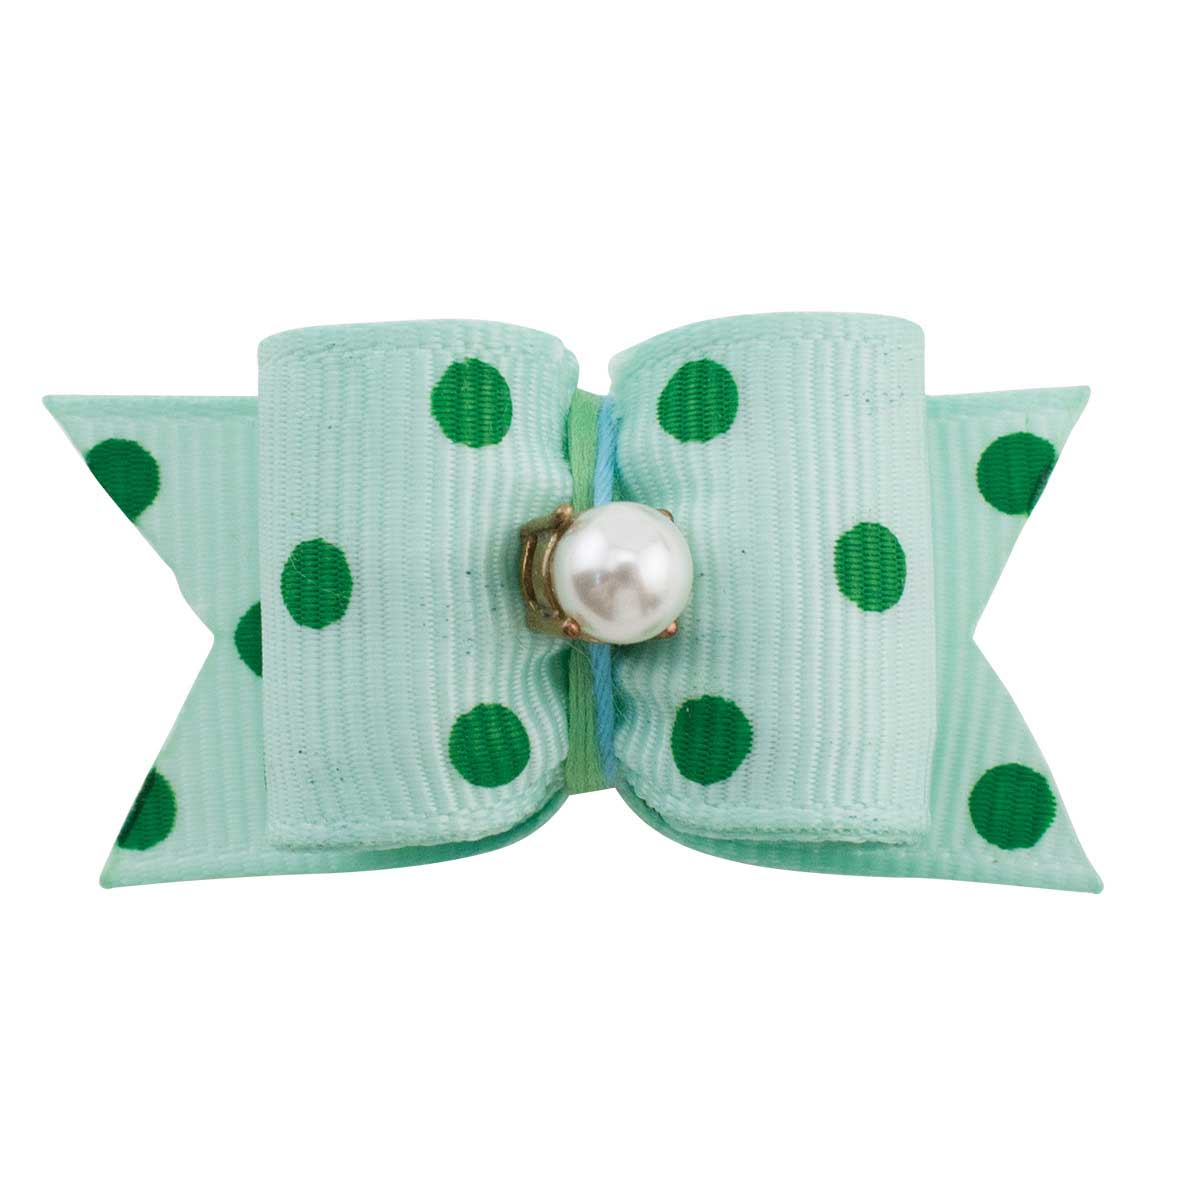 Fancy Finishes Grosgrain Polka Dot Grooming Bows With Pearl Center - 24 Count Bag